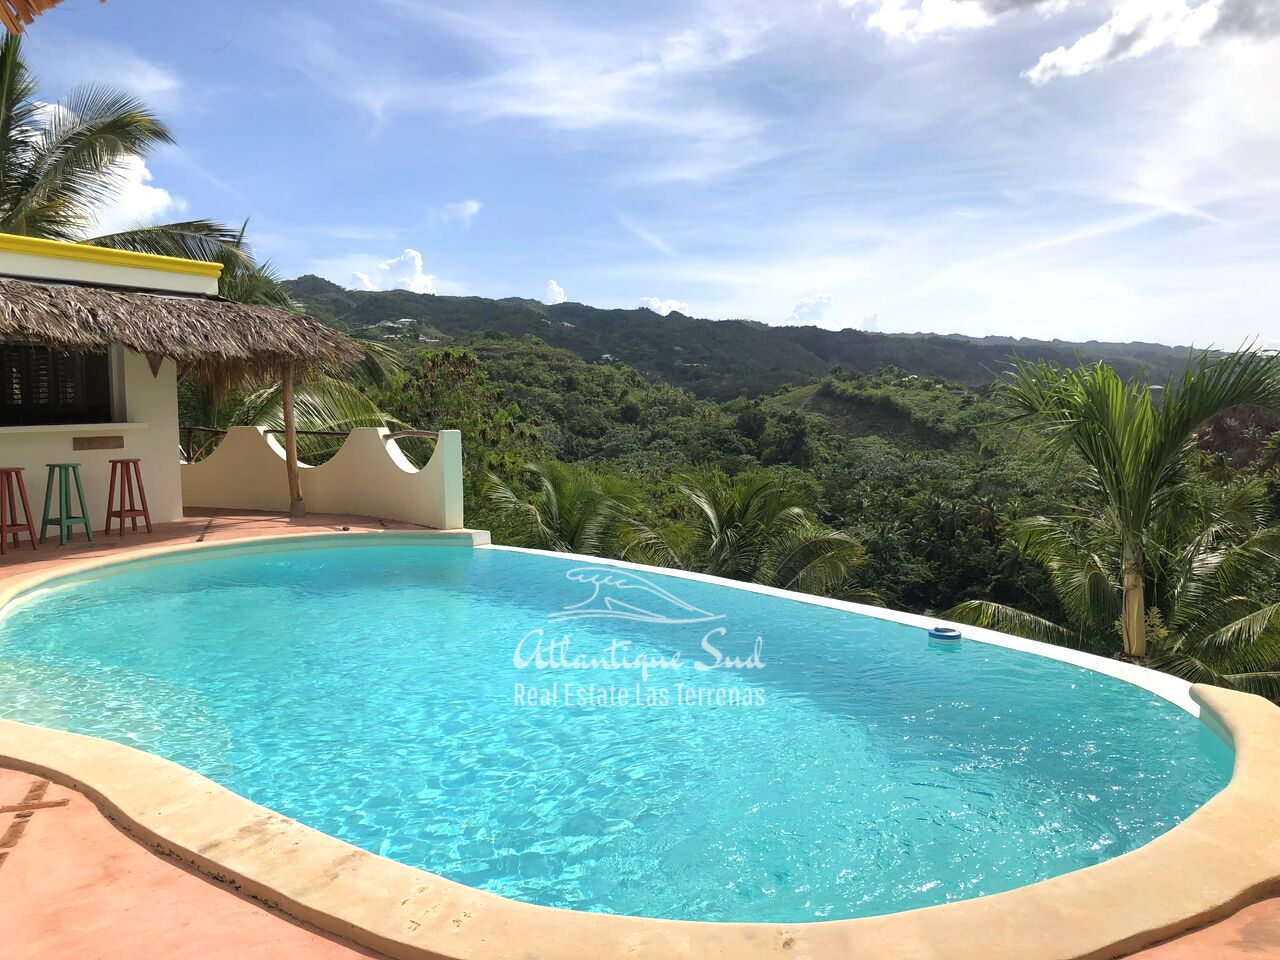 caribbean-style-villa-on-hill-for-sale9.png